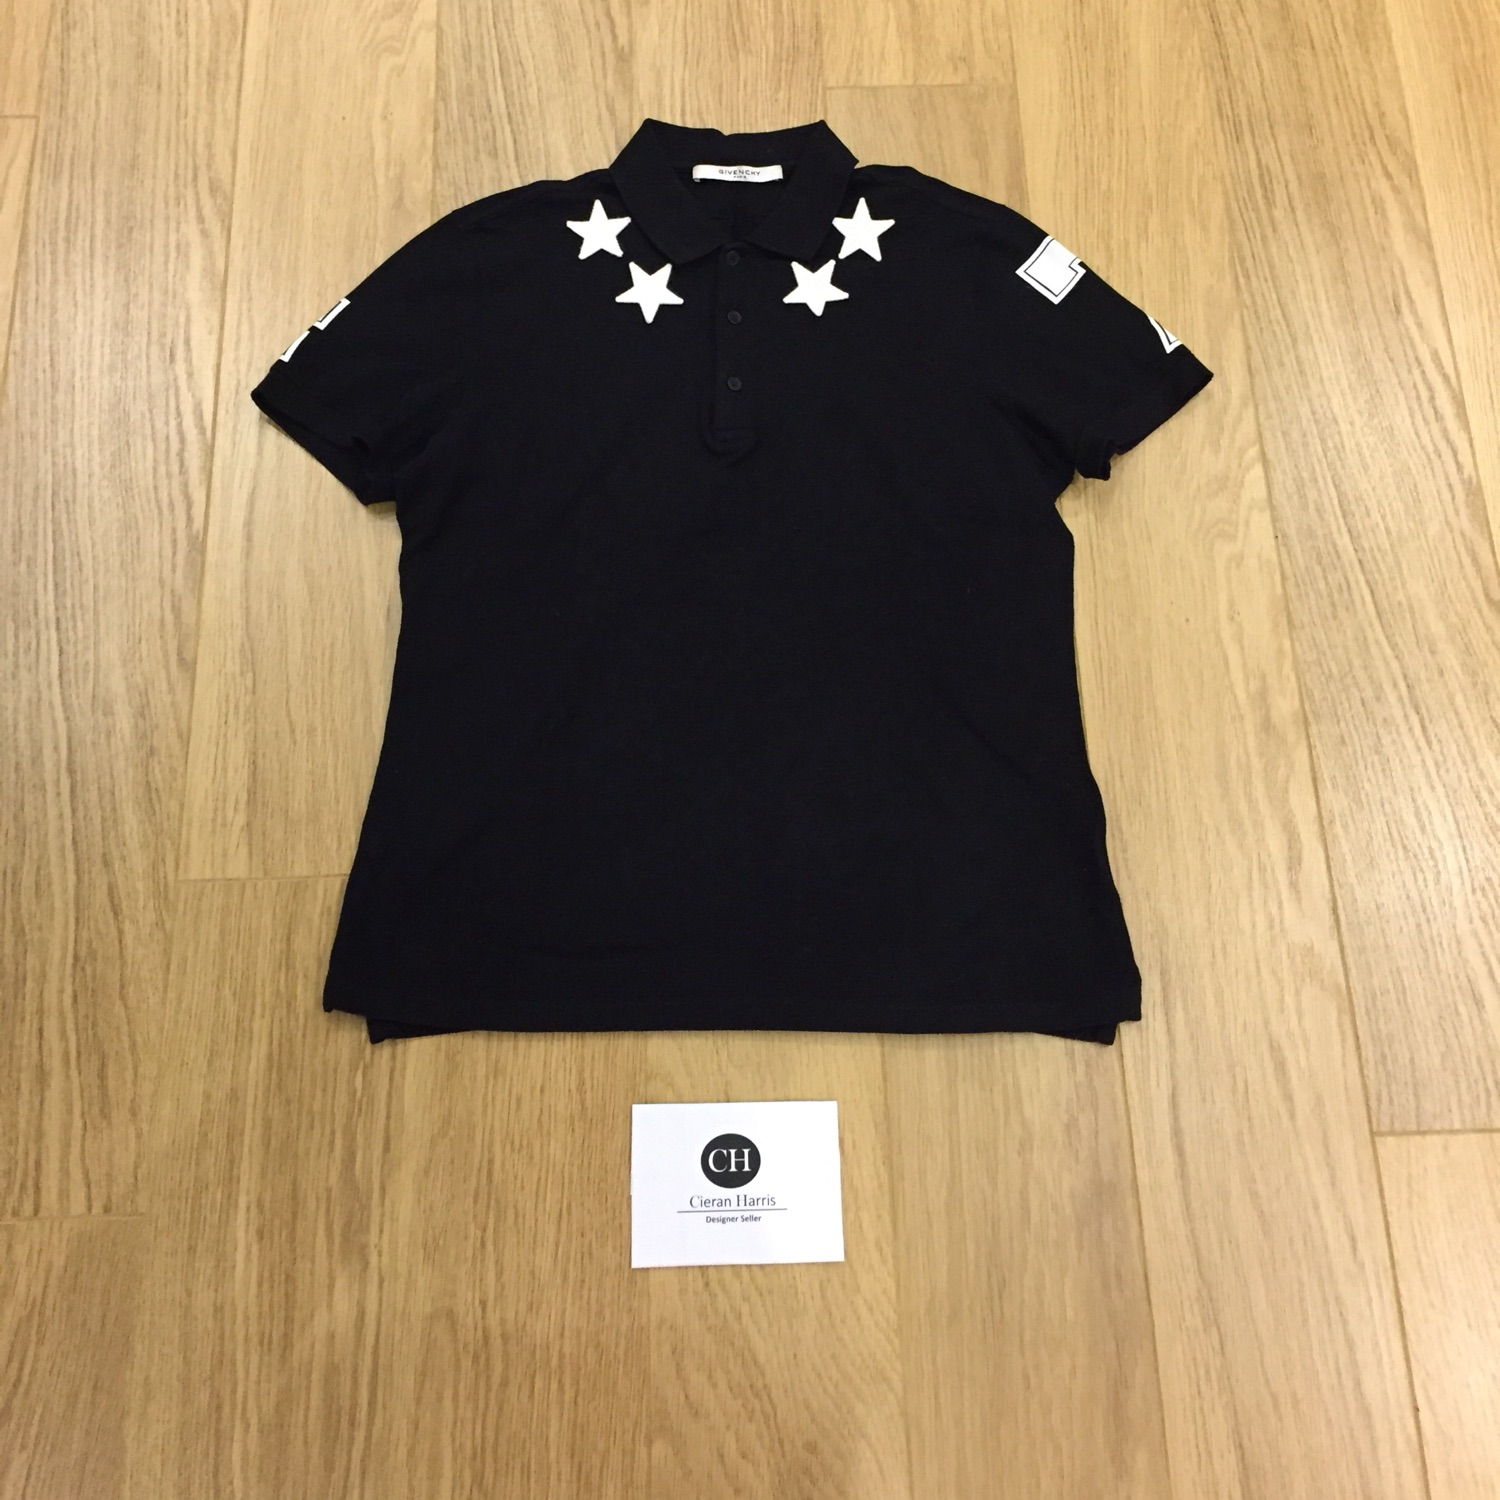 best service 92eea e2ccc Givenchy Star Polo Shirt Size Small Men's!!